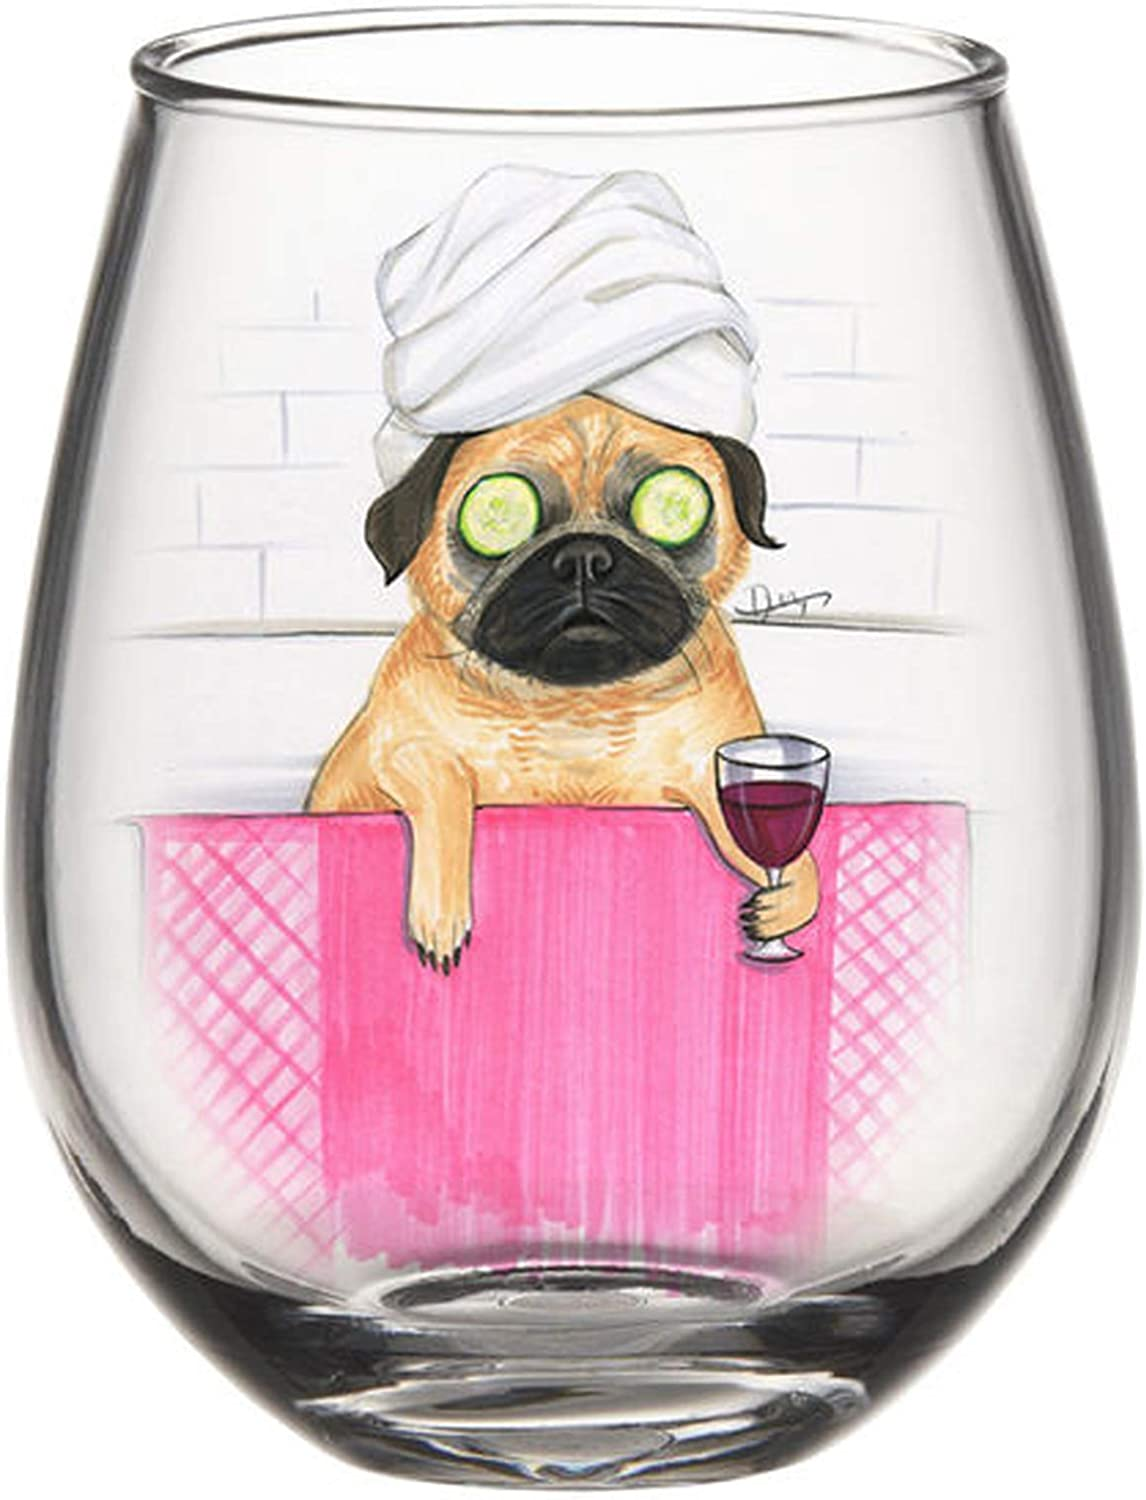 20 Ounce Silver Buffalo Rng2016fb Rong Pug Bath Boxed Stemless Glass Clear Home Kitchen Dining